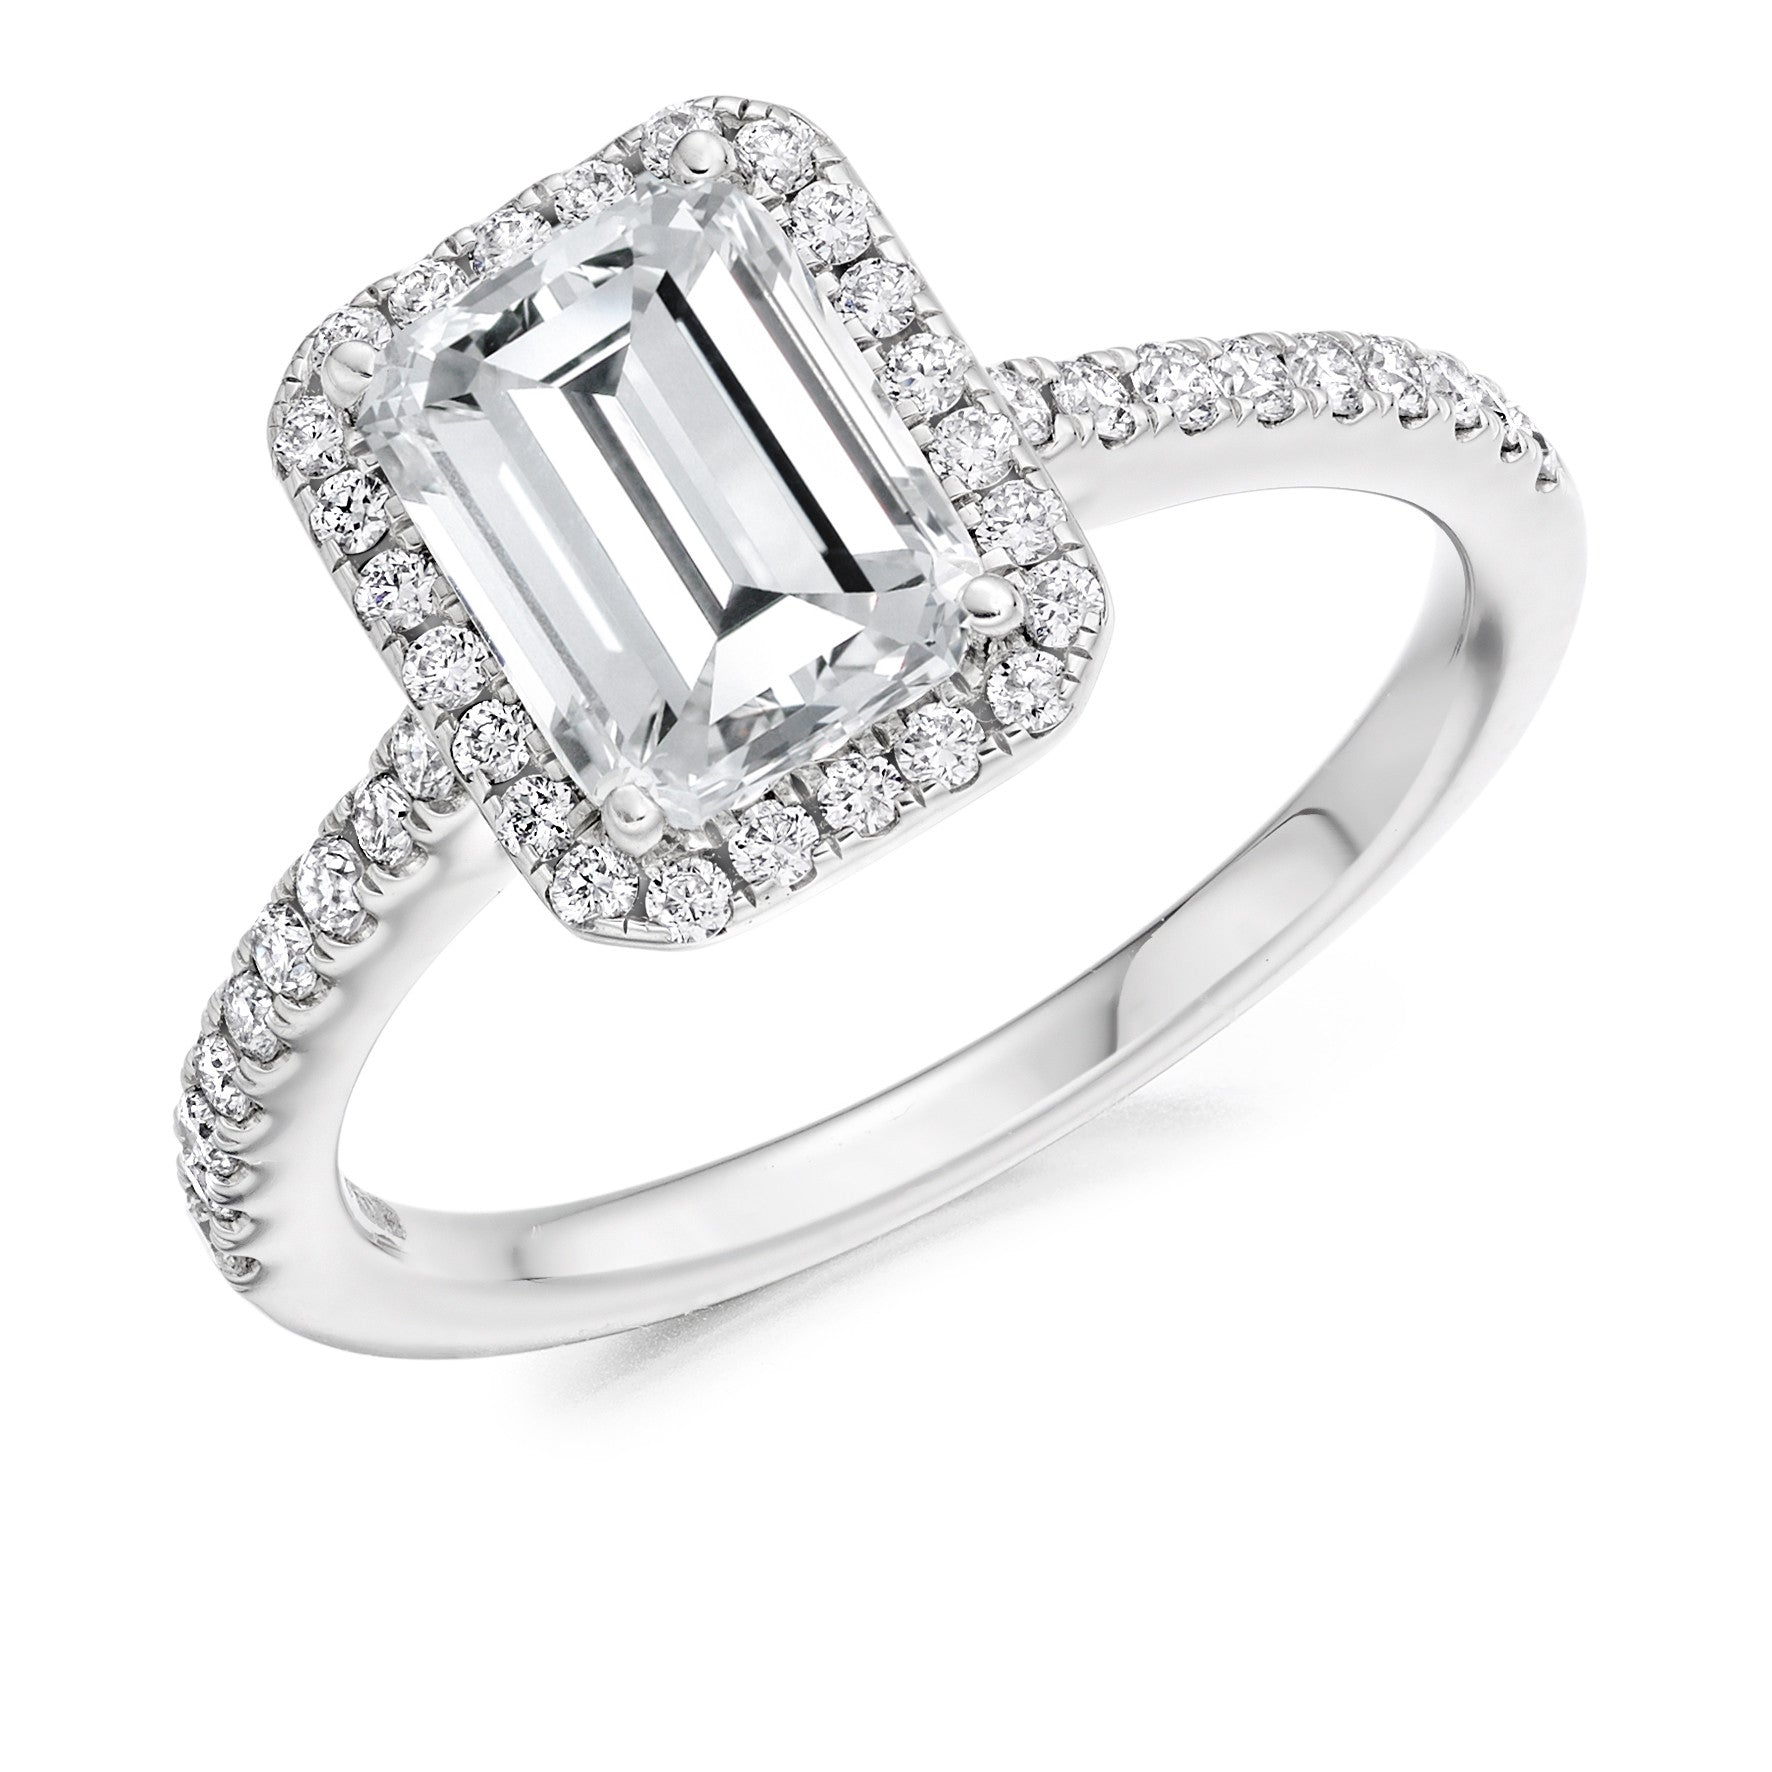 db band rings platinum bands de beers jewellery classic bridal diamond wedding